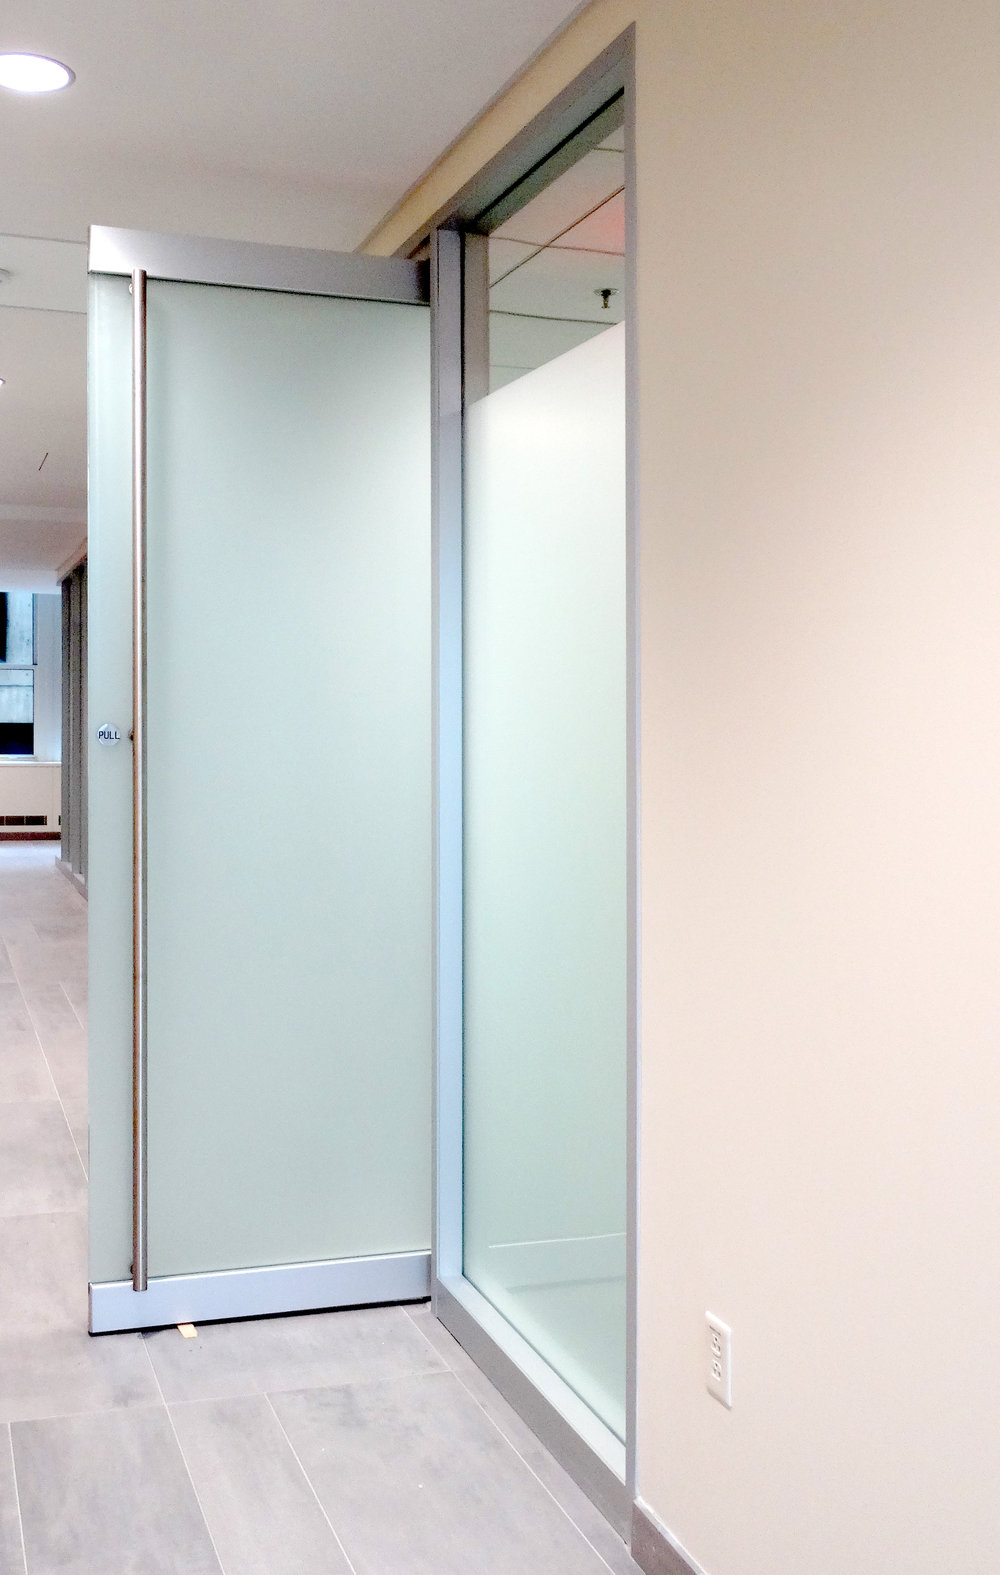 Encase Aluminum Framed Wall Frameless Glass Rail Door - Spaceworks AI.jpg